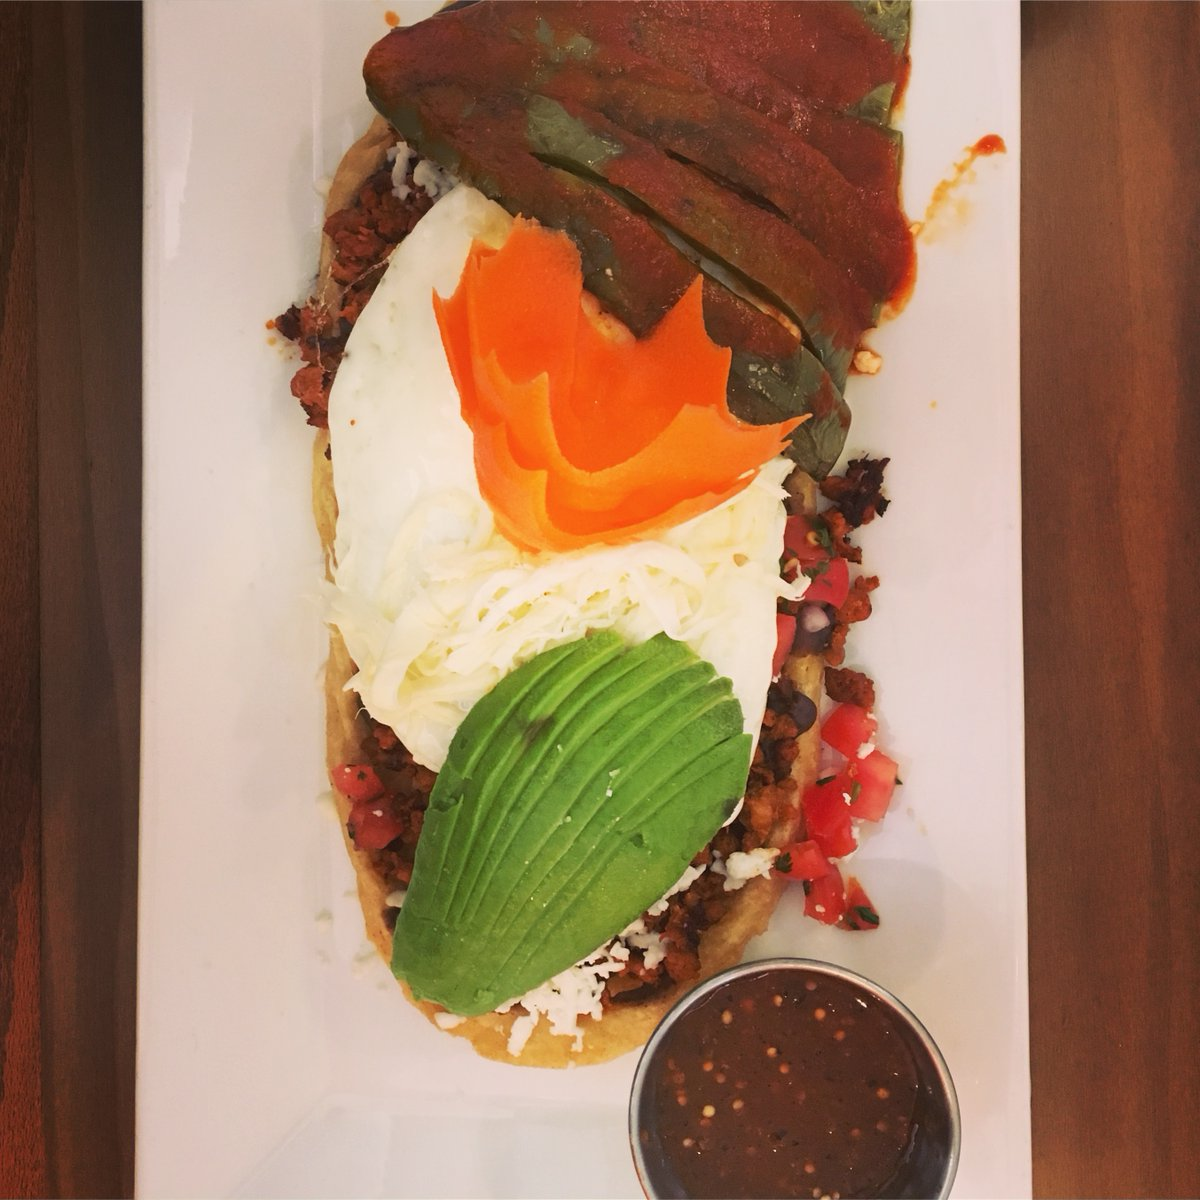 On this day in 2019 we had brunch at Mezcalito Oaxacan Cuisine in Rocklin, CA, then got back on I-80 and drove through Tahoe National Forest on the way to Elko, NV. I dont remember anything about this day except breakfast.